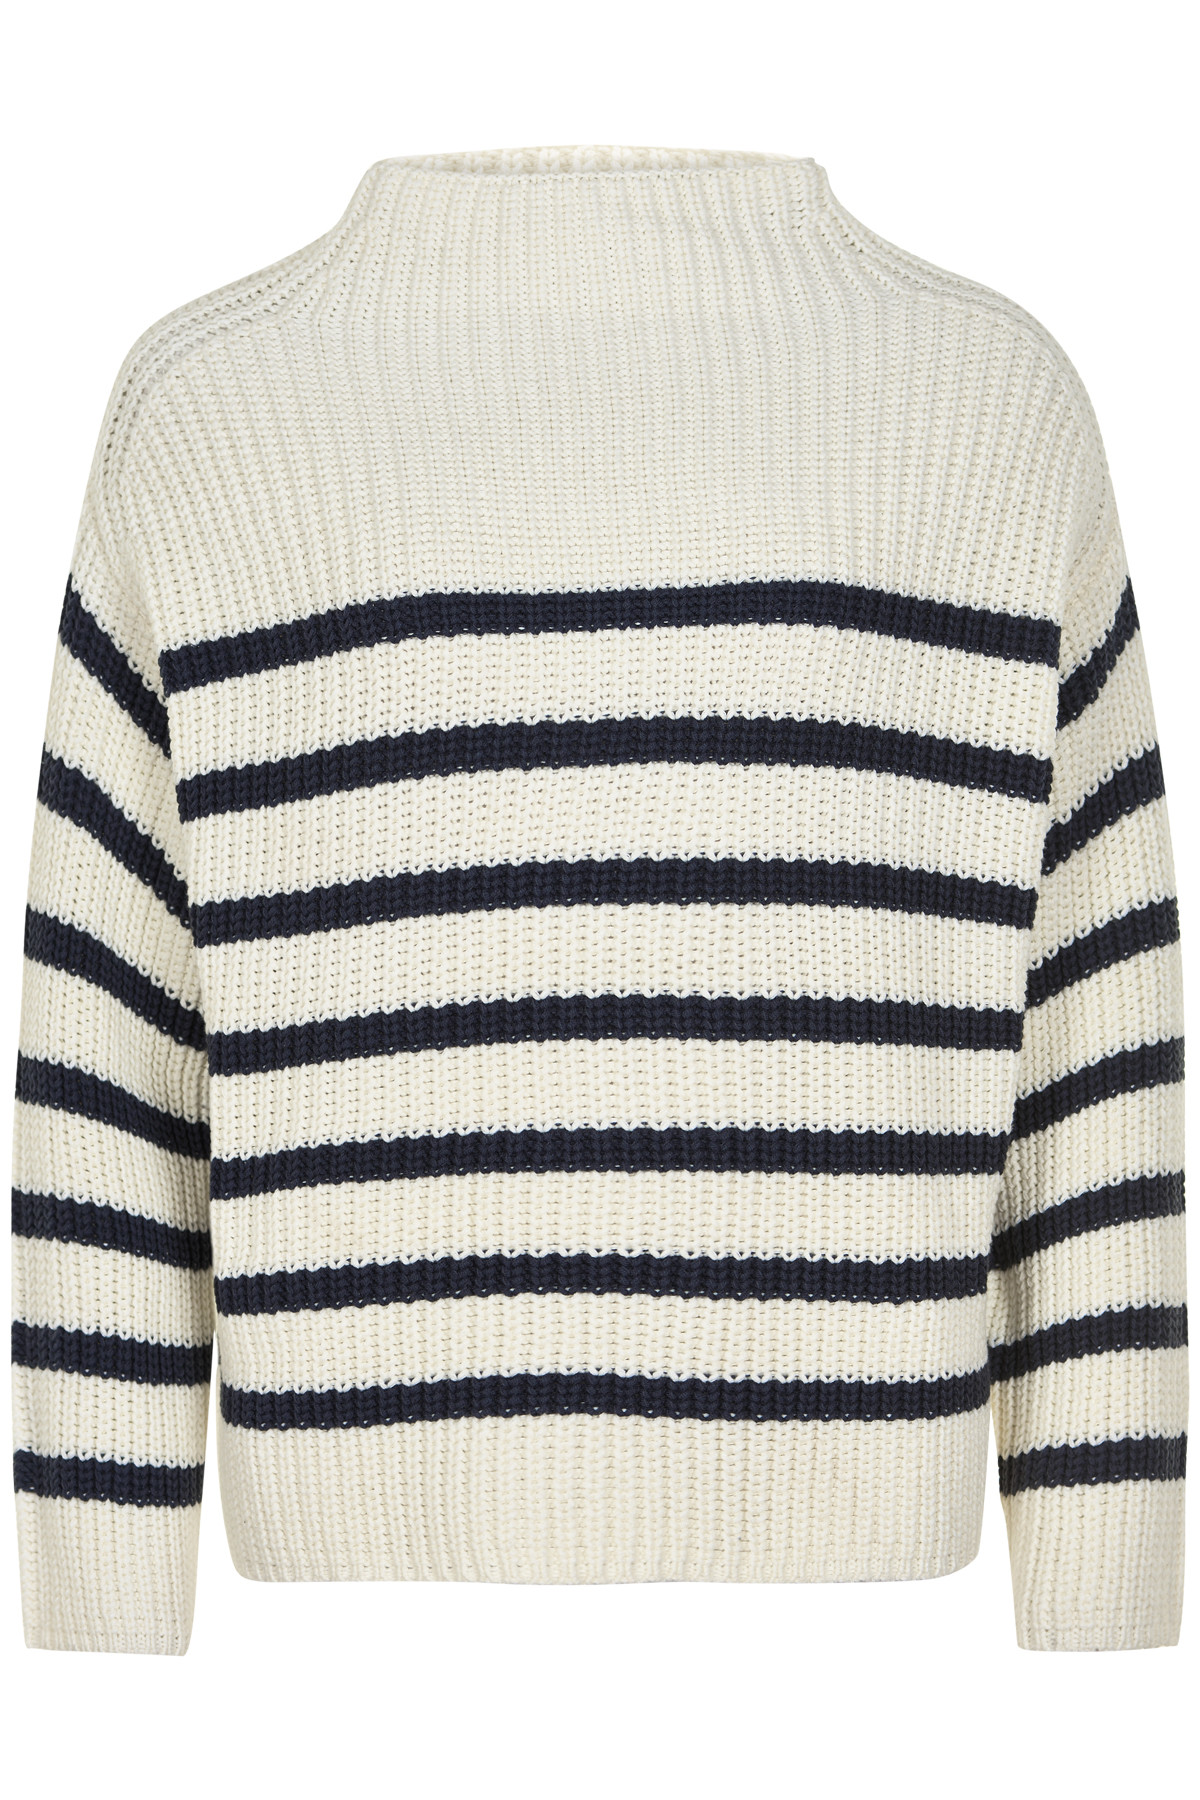 Image of   AND LESS JIS PULLOVER 5419210 (W. Allysum, XS)